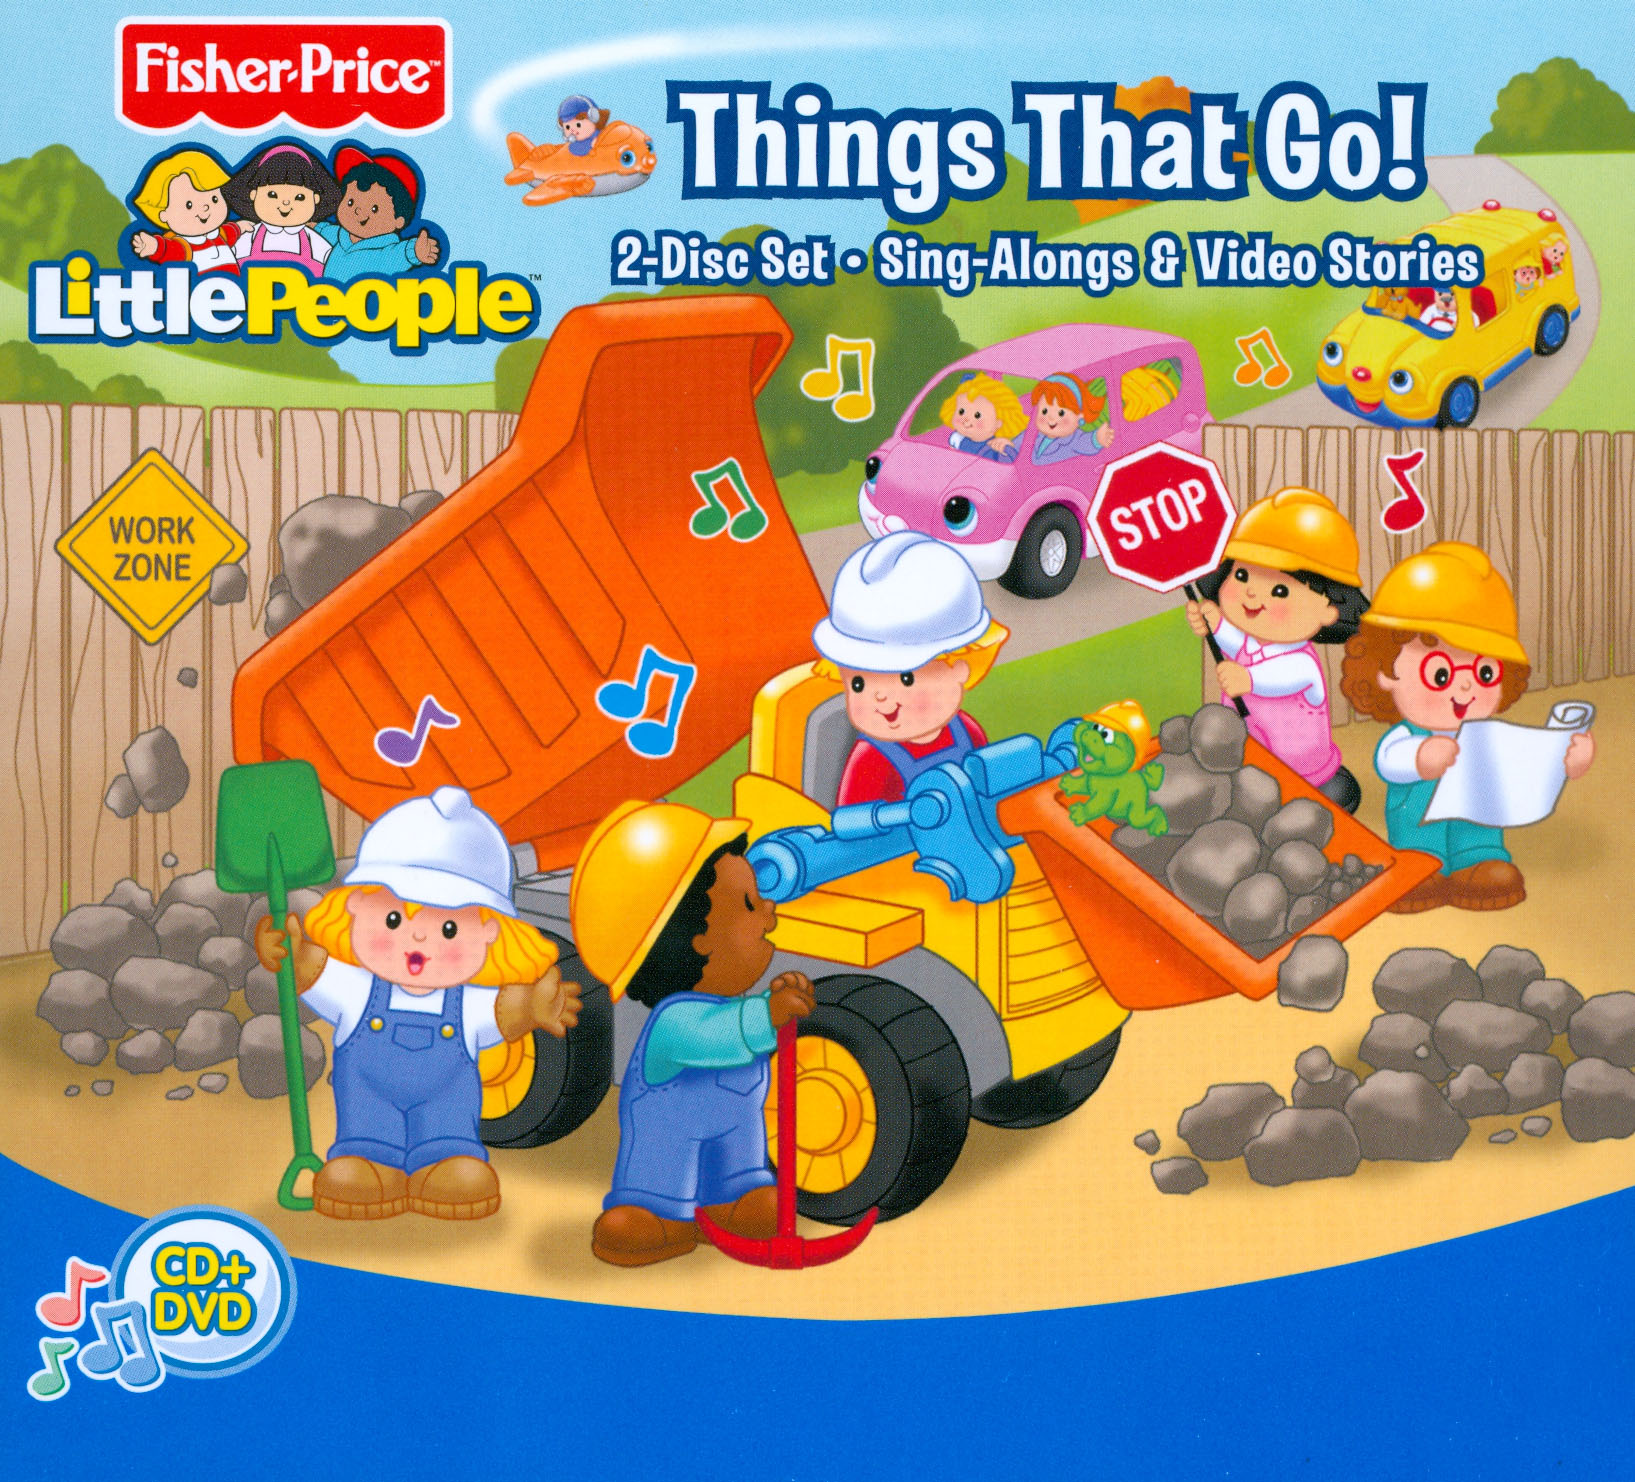 Little People: Discovering More Things That Go